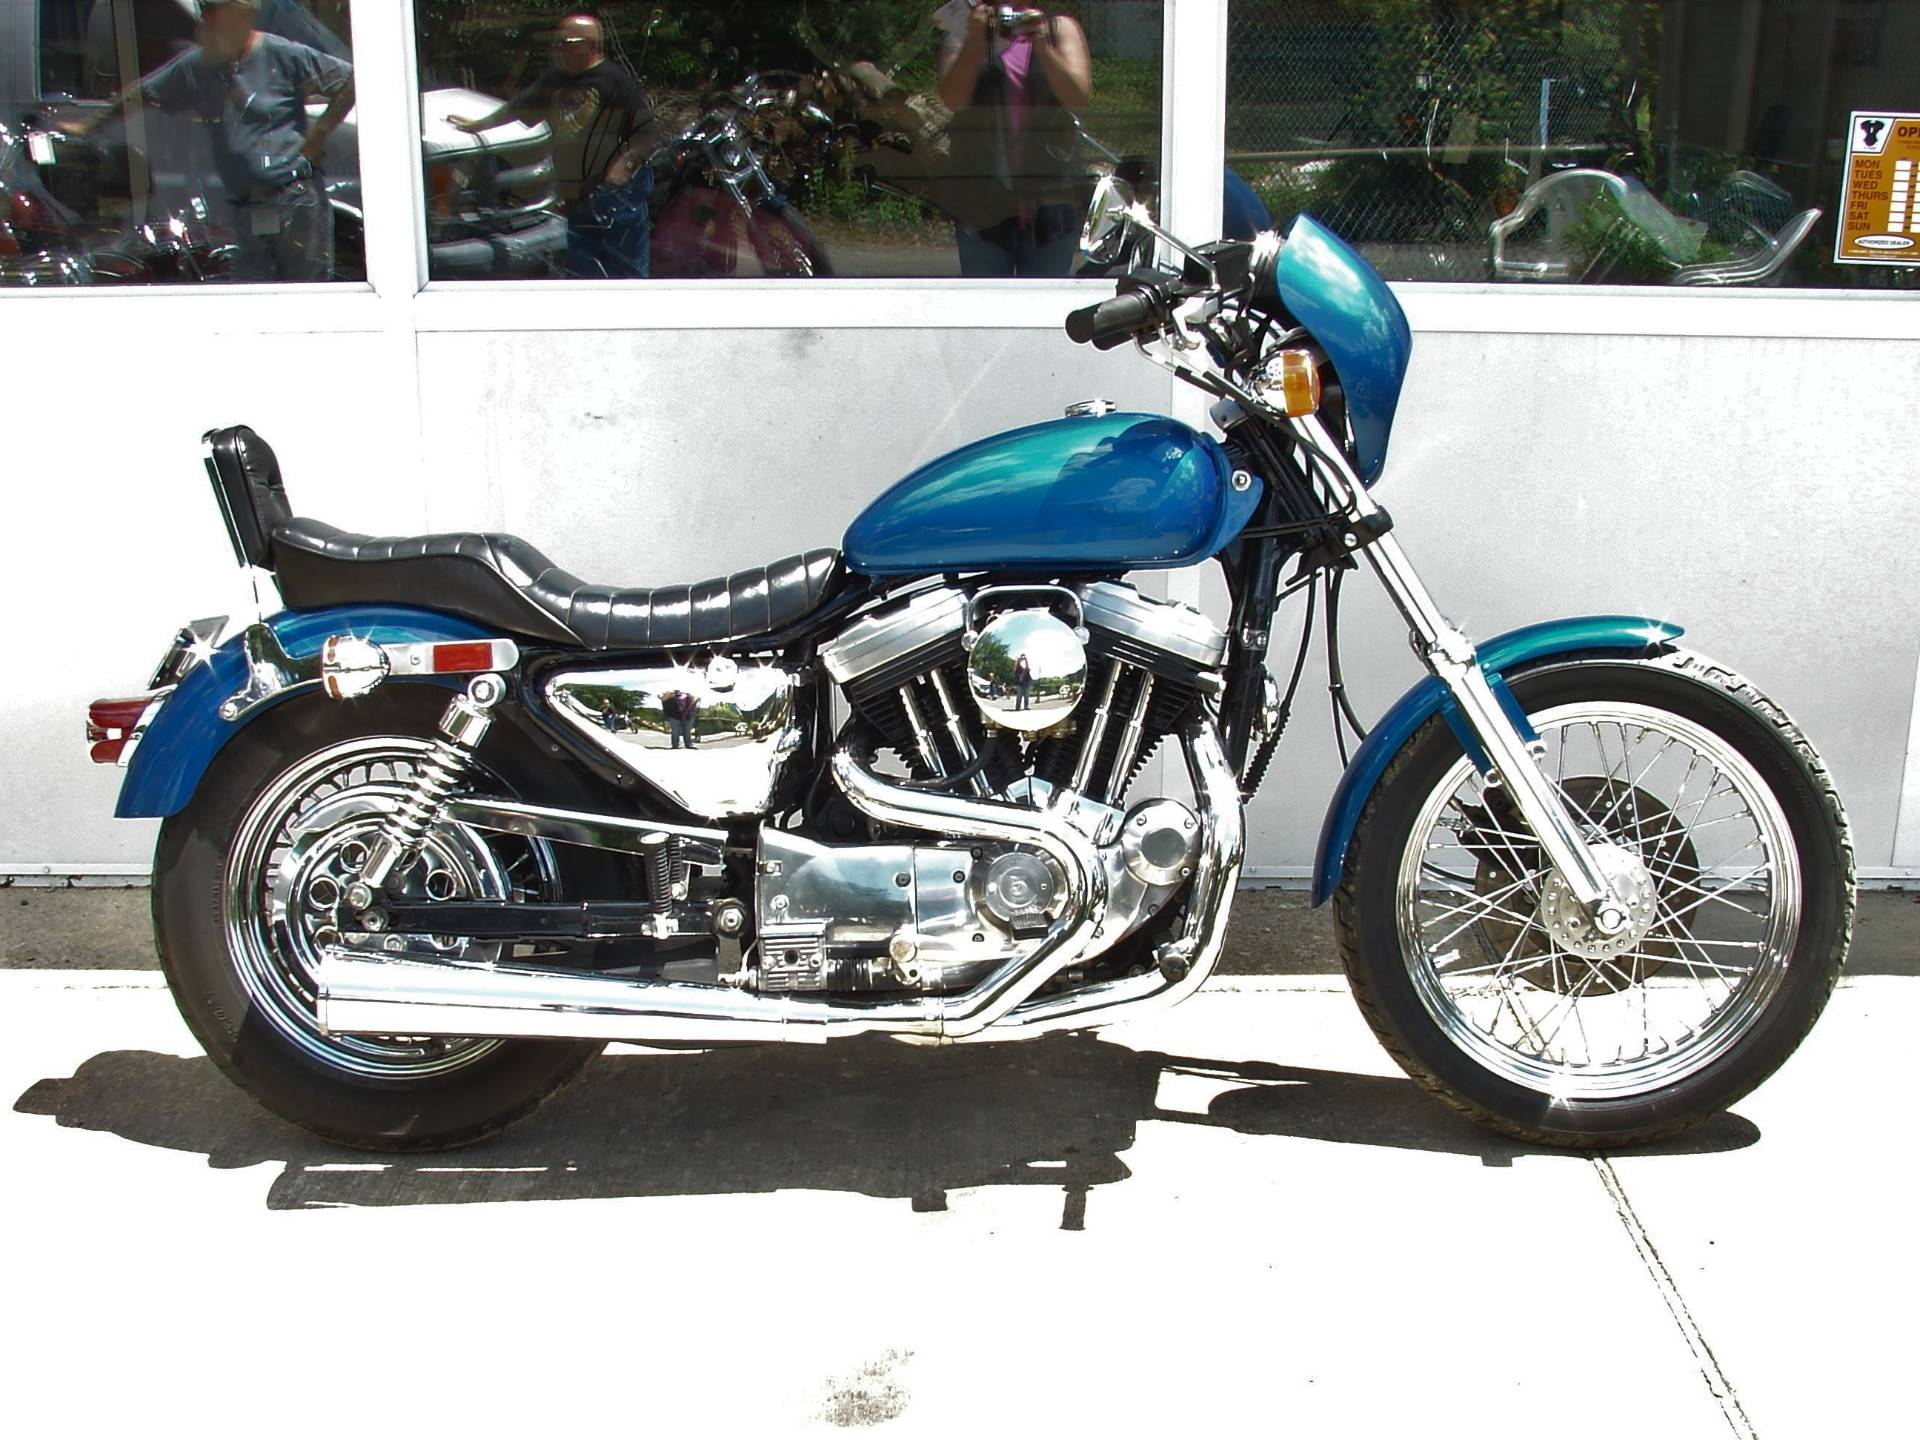 1993 Harley-Davidson 1200cc Sportster (Conversion) in Williamstown, New Jersey - Photo 15